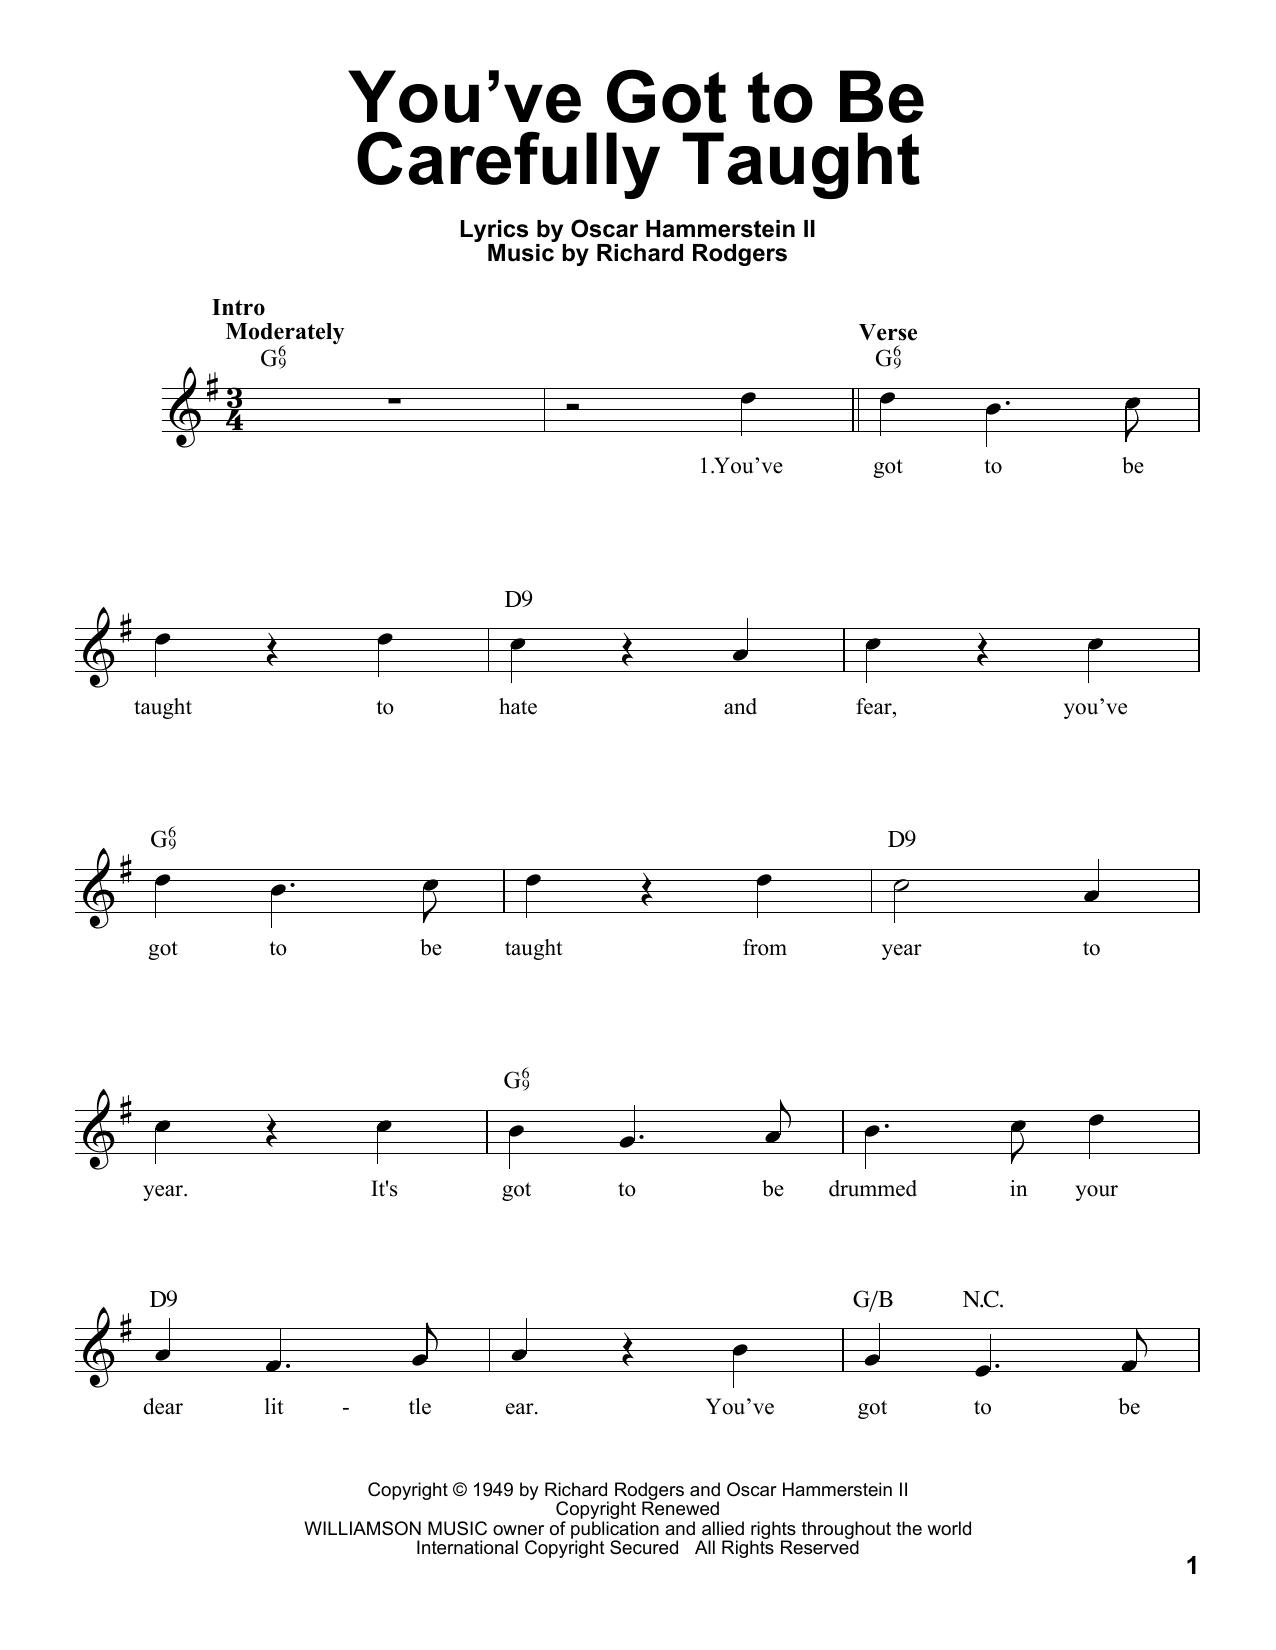 You've Got To Be Carefully Taught Sheet Music